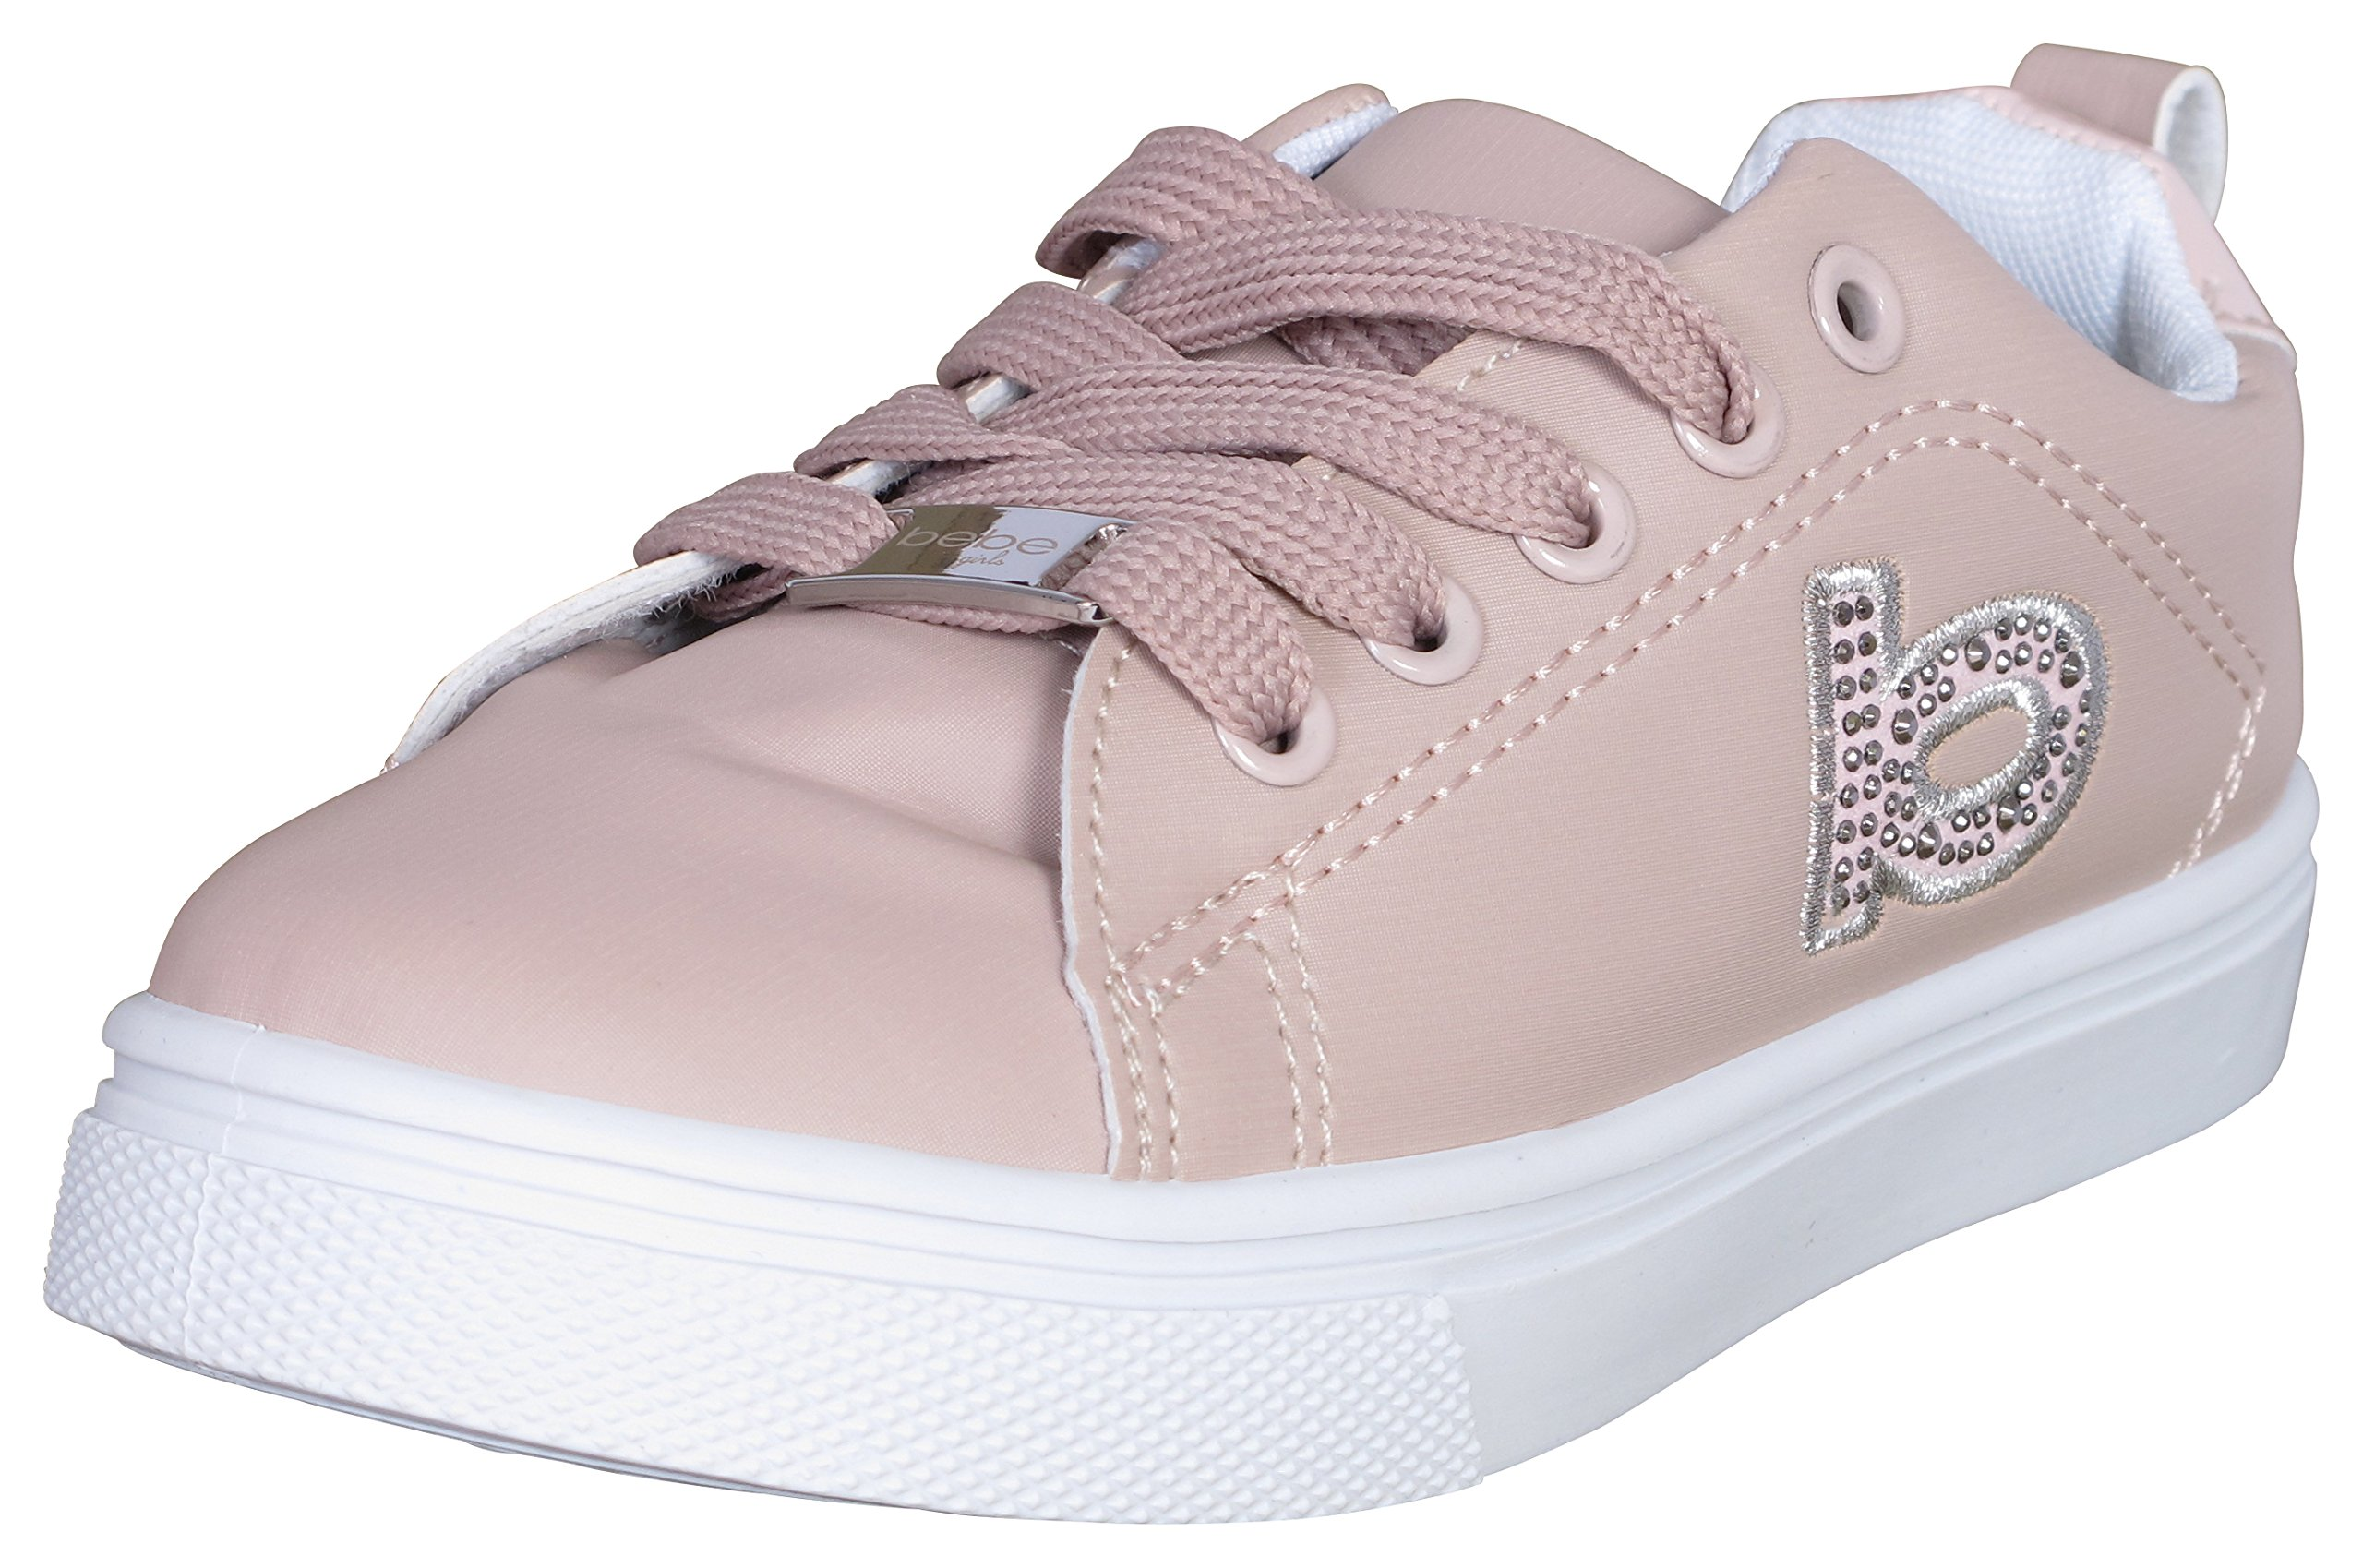 Bebe Girls Classic Low Top Fashion Sneakers, 11/12, Blush''